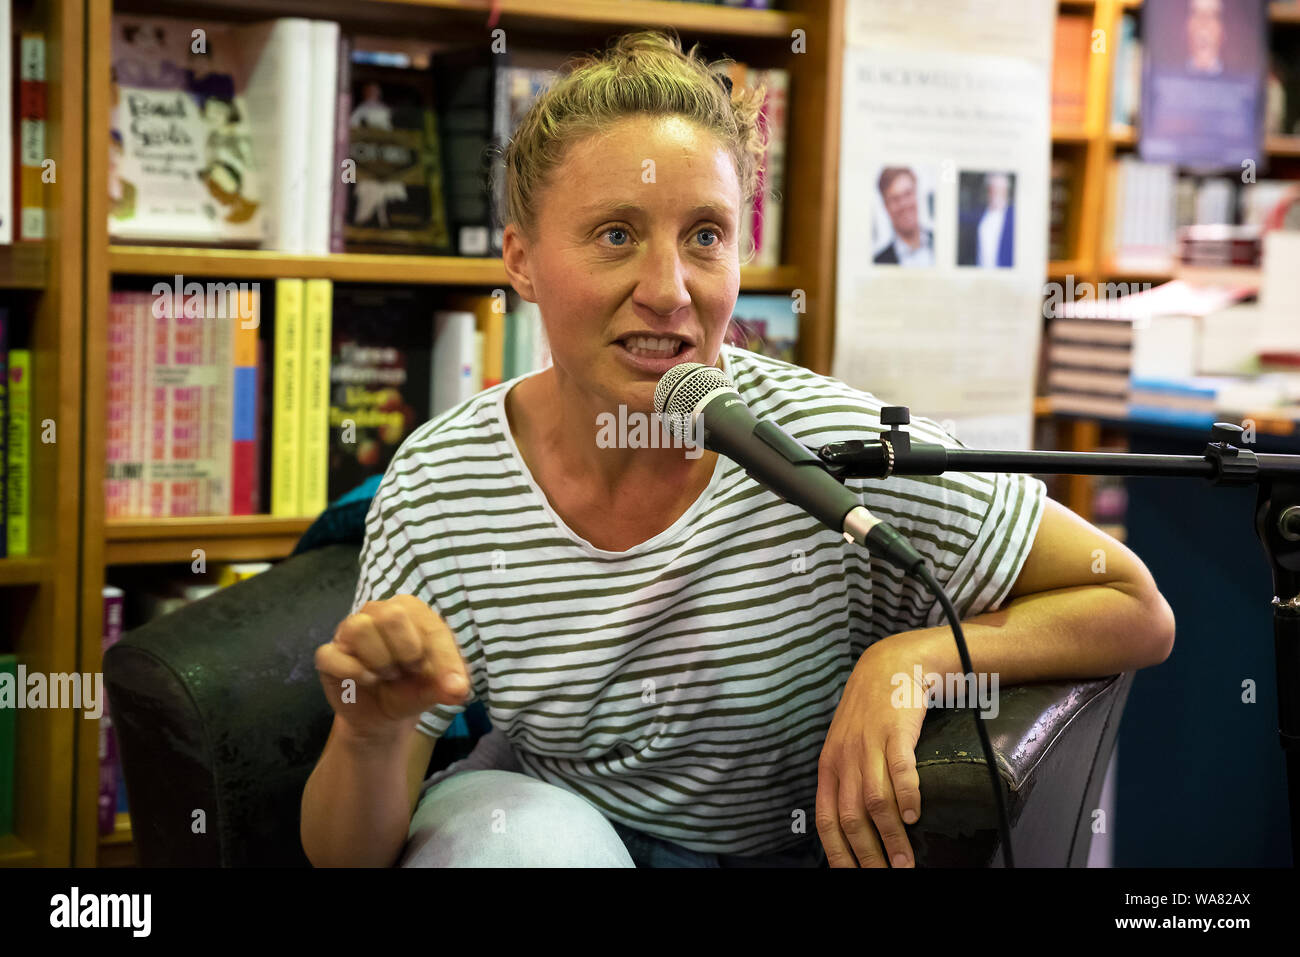 Oxford, UK. August 17th 2019. Homesick - Writer and Singer Songwriter Catrina Davies in conversation with Writer and Environmentalist Activist George Monbiot at Blackwells Bookshop. Catrina spoke of her life in Cornwall living in a tin shed and how it came about, the UK housing crisis and her new book, Homesick. Her story has been featured in Vogue, Red, Daily Express, Surfers Path and other publications. Pictured Catrina Davies. Credit: Stephen Bell/Alamy Stock Photo